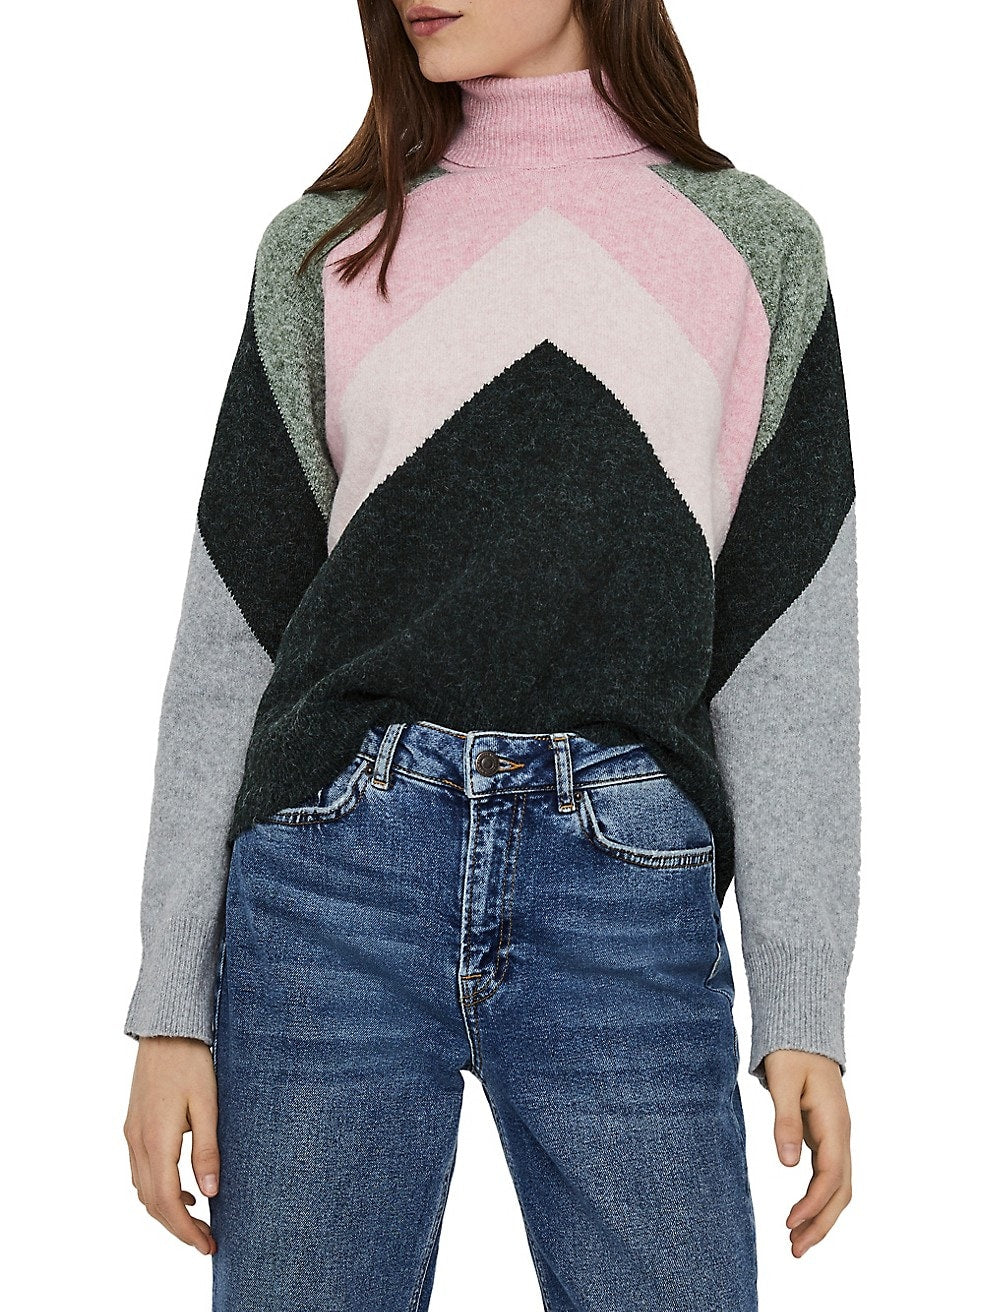 Doffy Colourblock Roll Neck Sweater